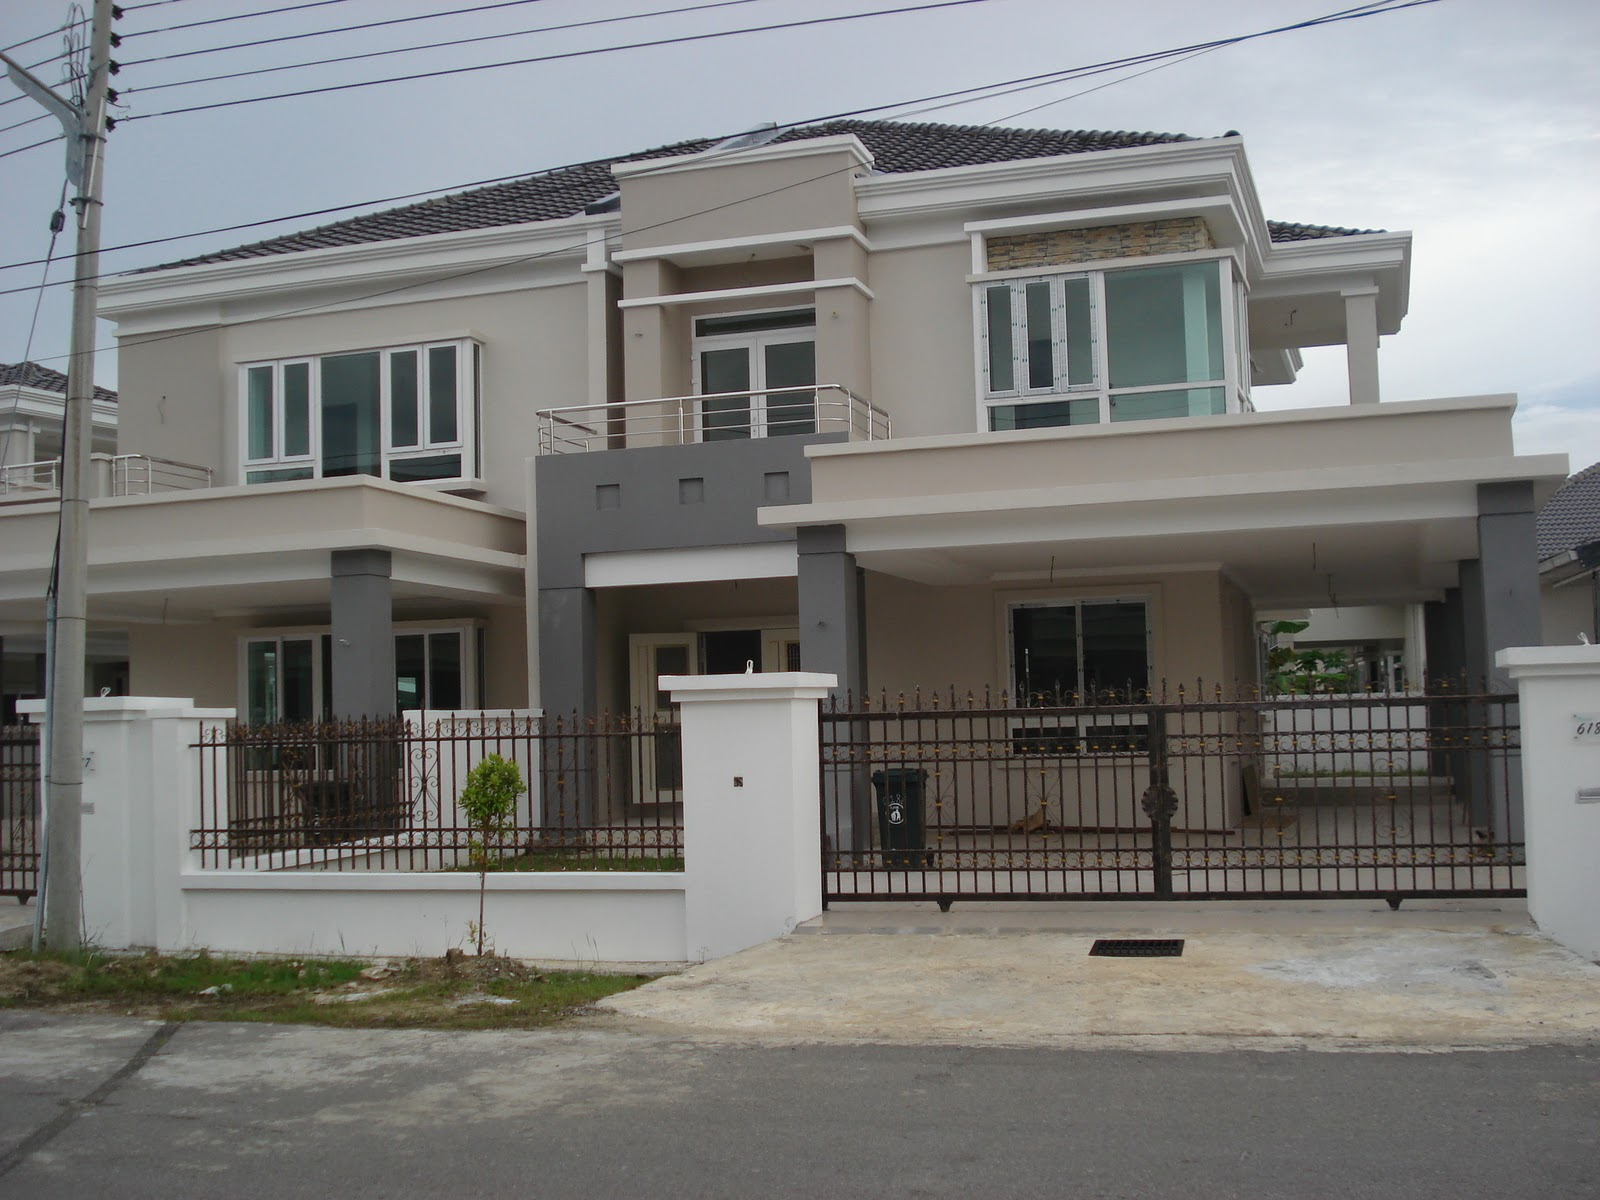 EM REAL ESTATE AGENCY HOUSE FOR SALE IN MIRI SARAWAK